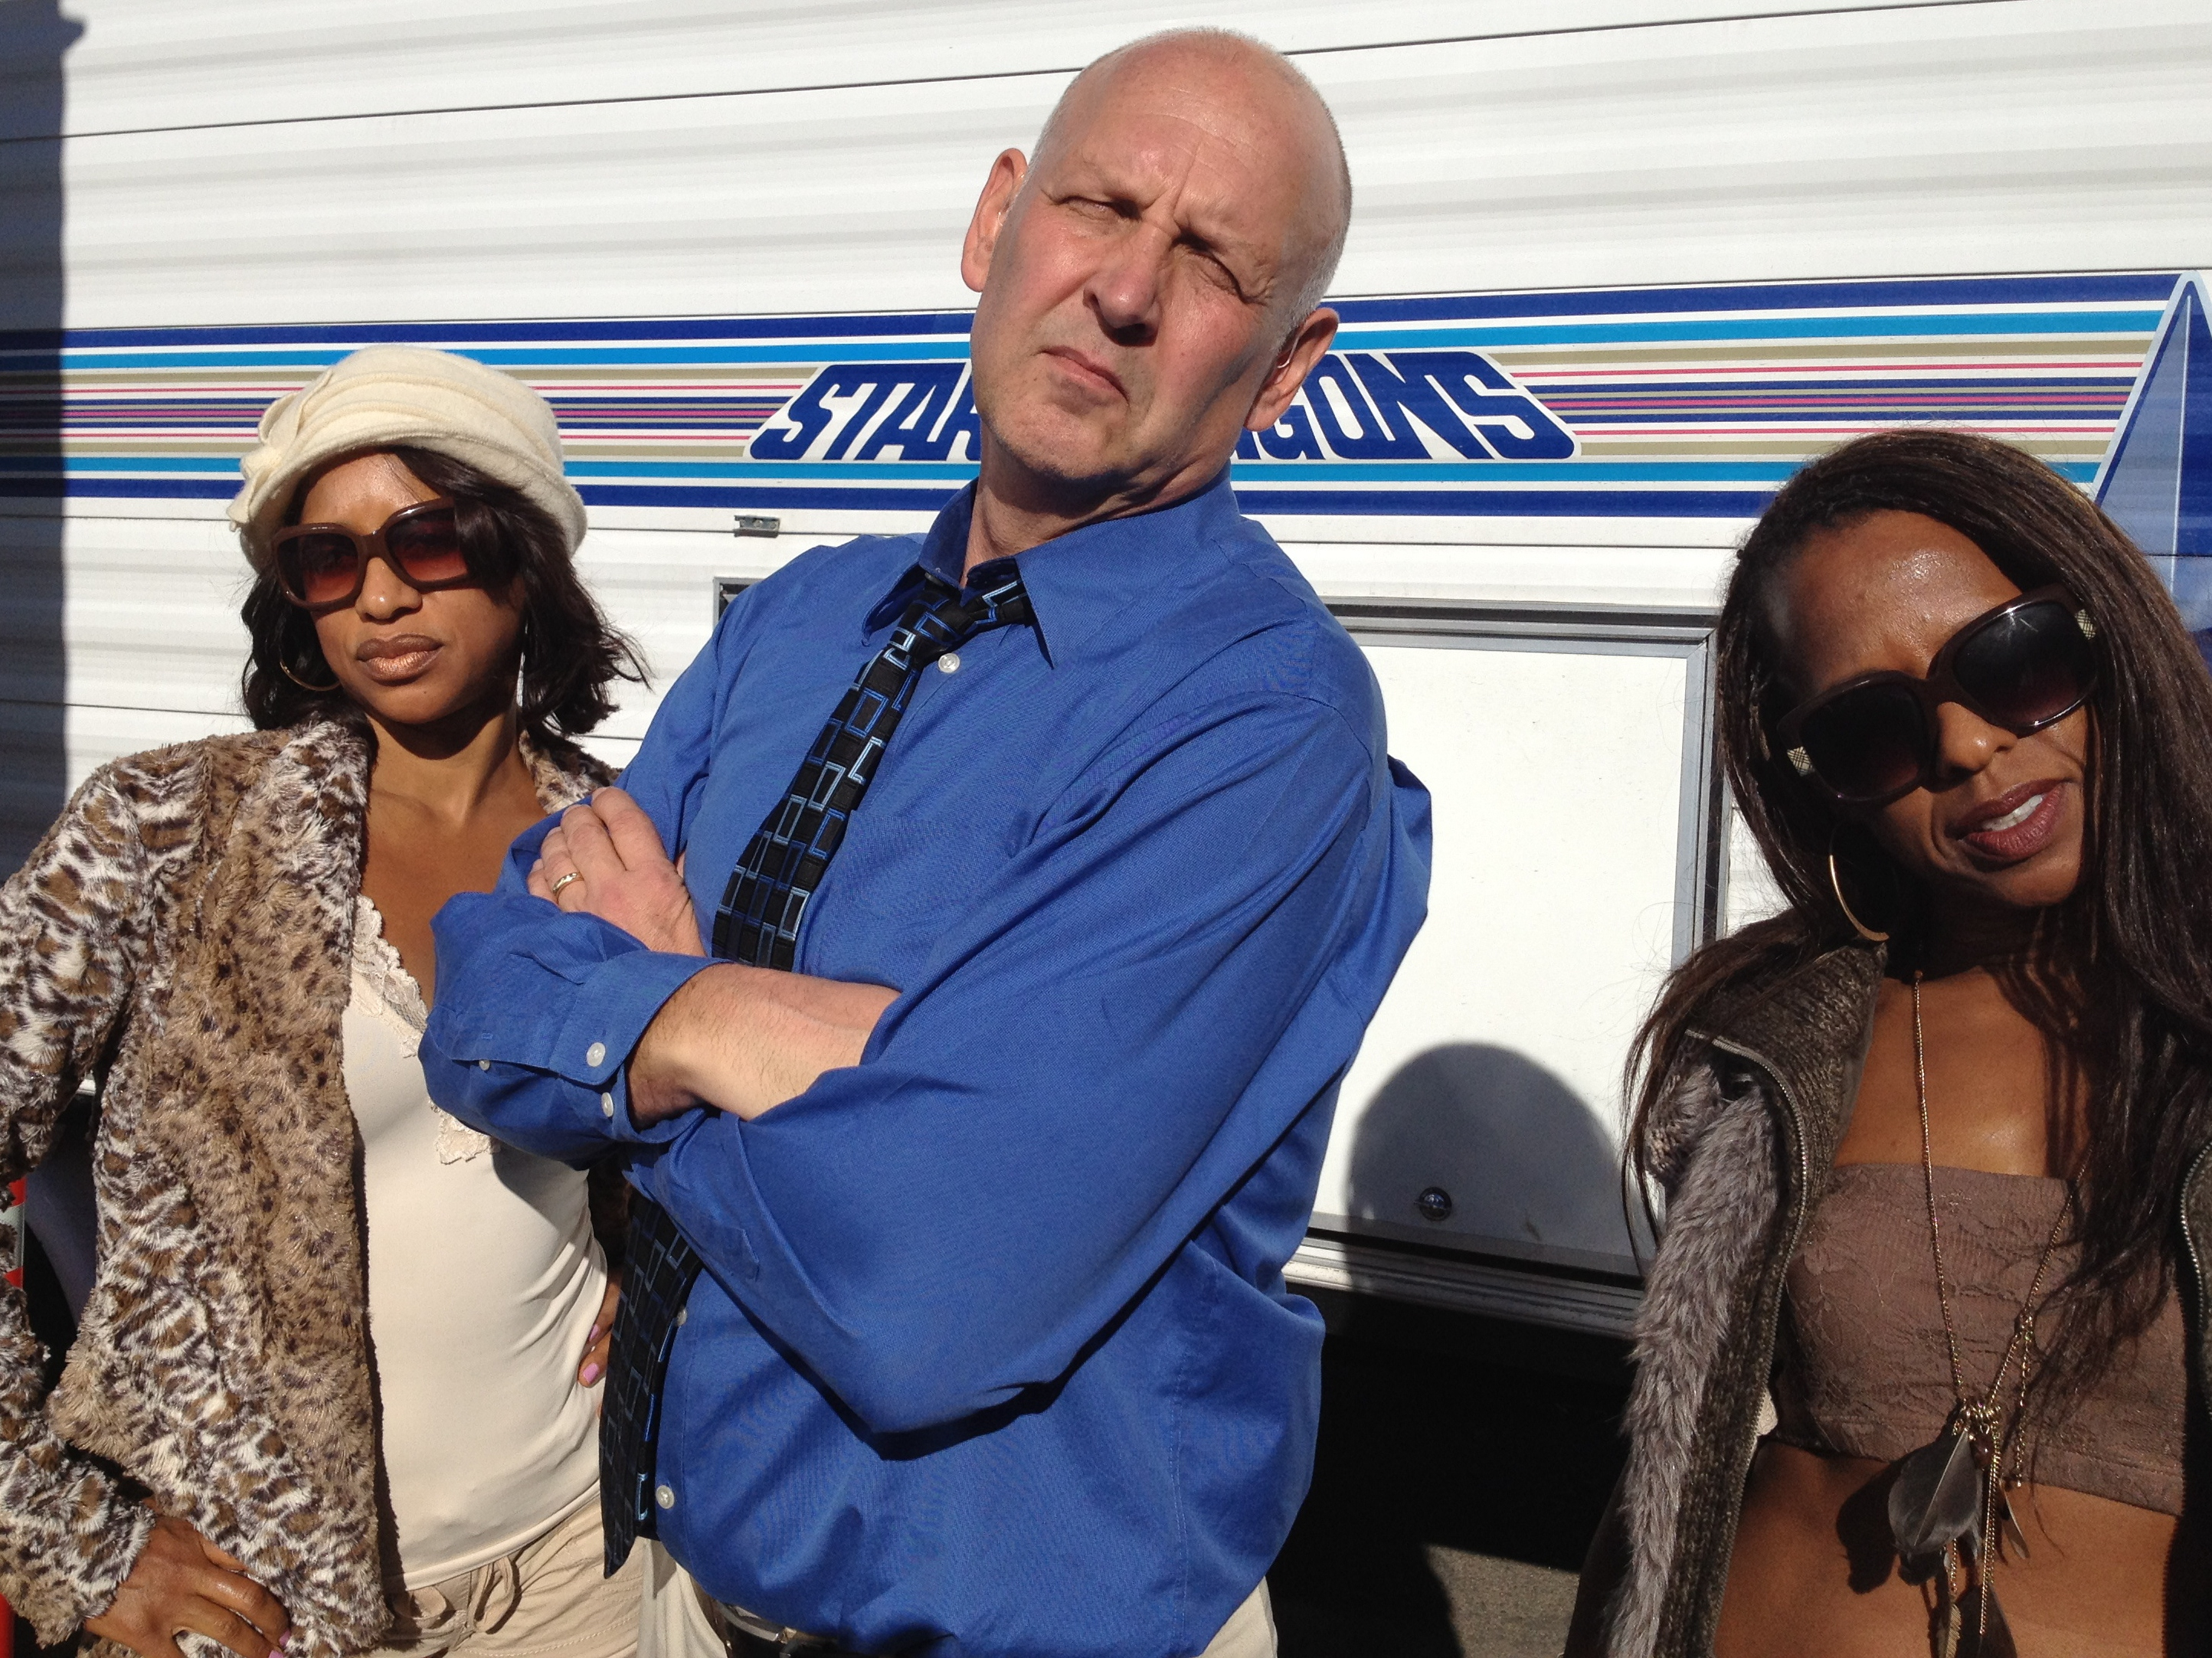 BH Interview: Nick Searcy on Embracing His Conservative Side in Hollywood